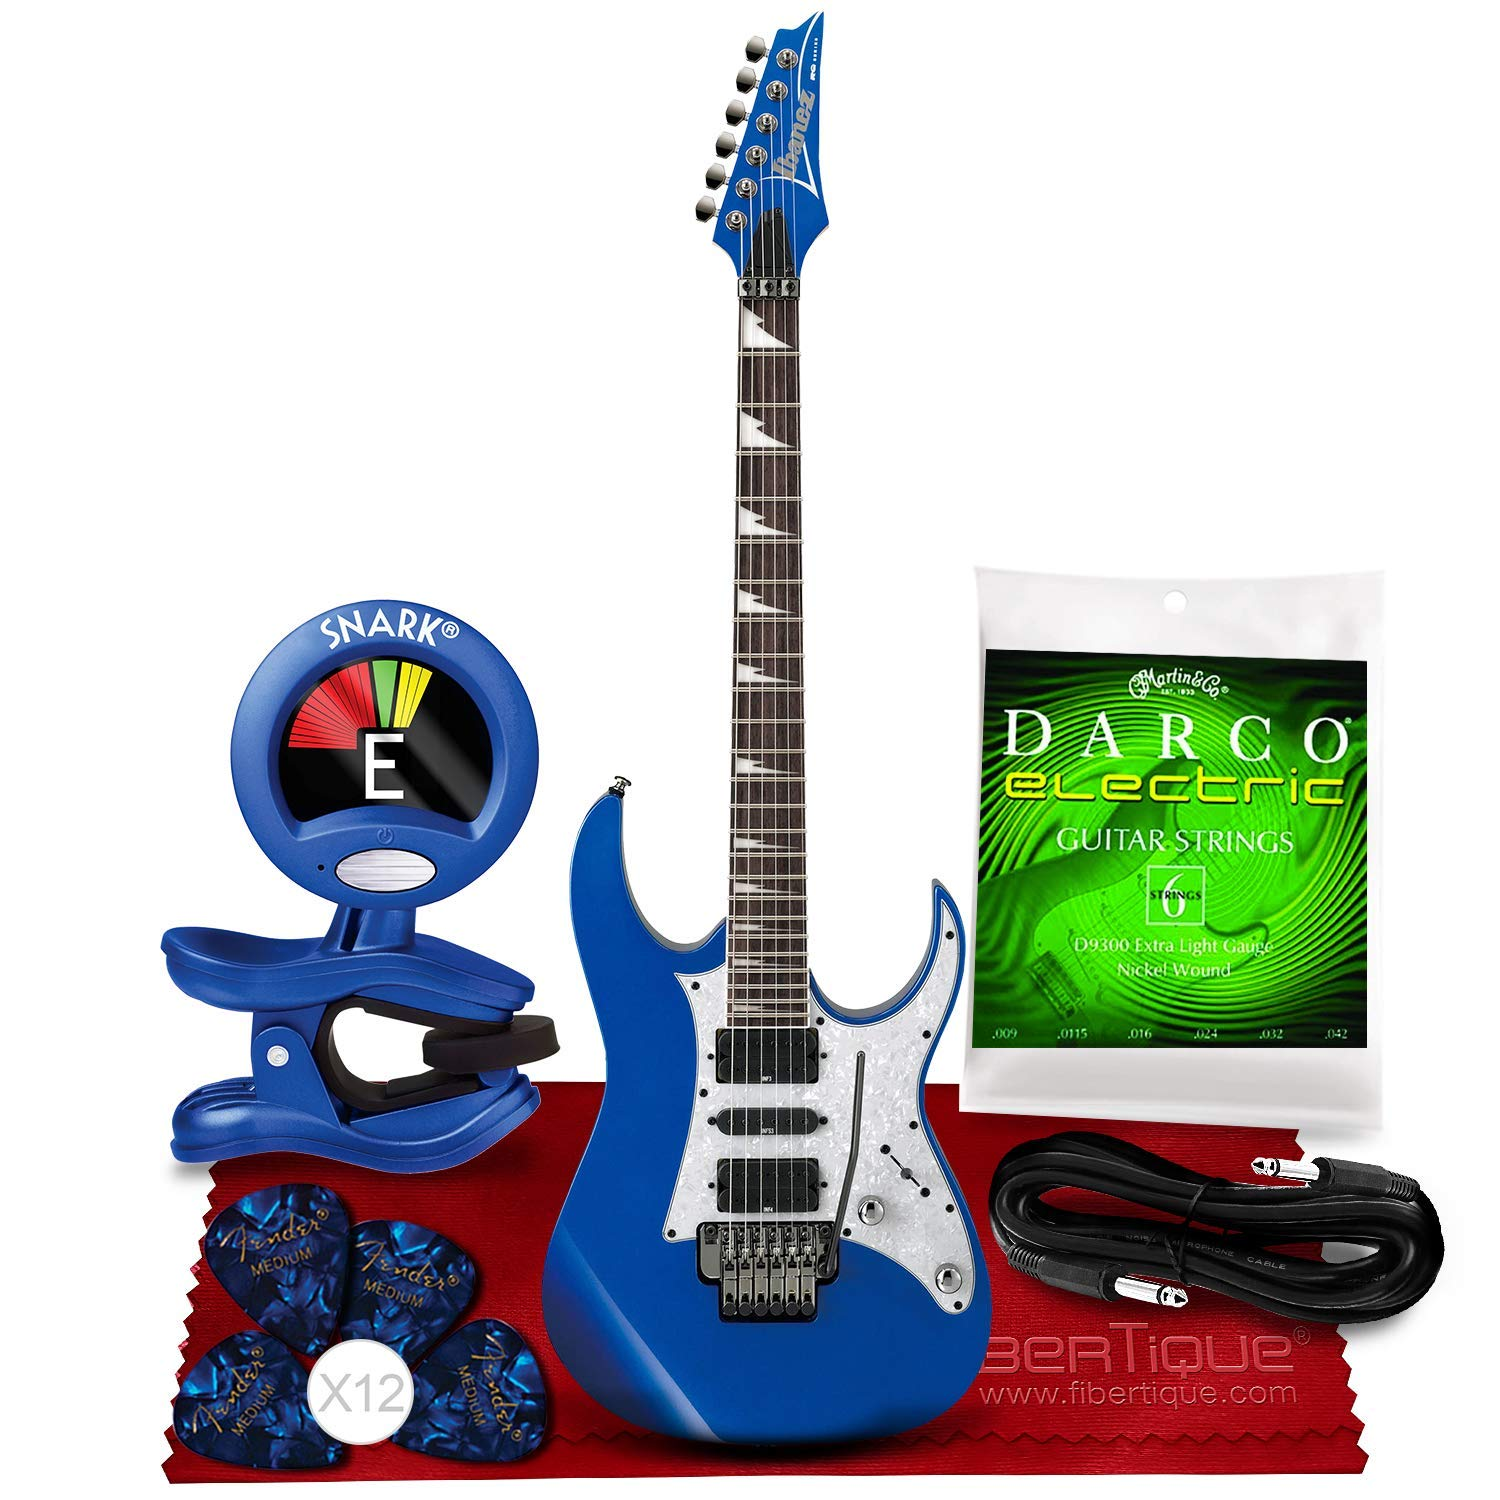 Cheap Ibanez RG450DX RG Series Electric Guitar (Starlight Blue) + Blue Clip-On Chromatic Tuner Guitar Strings Fender Guitar Picks Cable and Fibertique Microfiber Cleaning Cloth Black Friday & Cyber Monday 2019